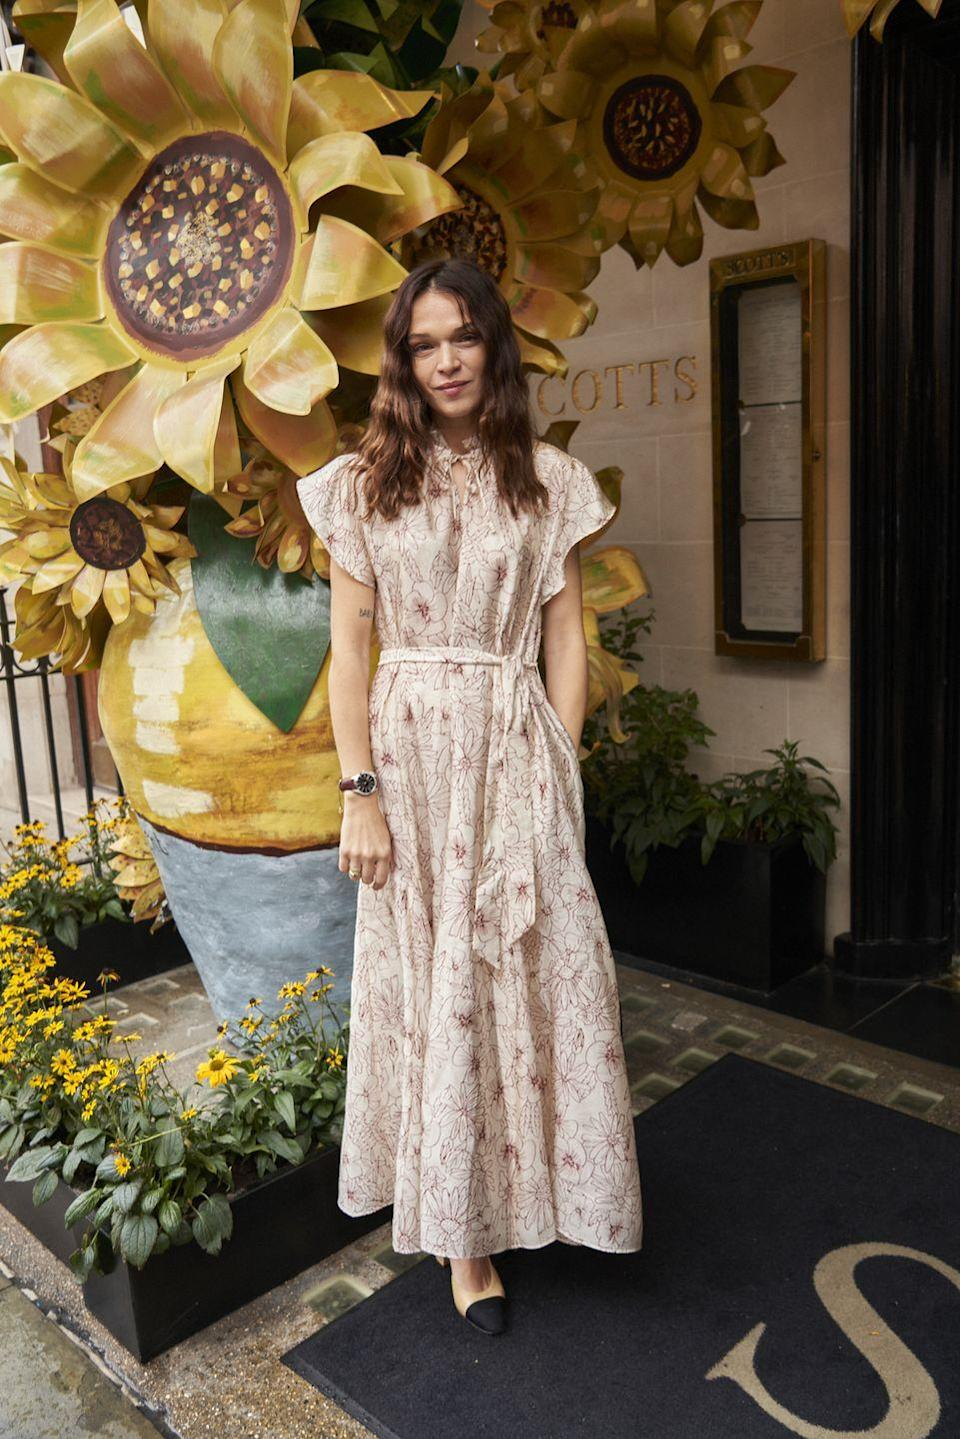 <p><strong>28 September</strong></p><p>Anna Brewster arrived at Scott's wearing a pretty floral-print dress with Chanel pumps and an Omega watch. </p>